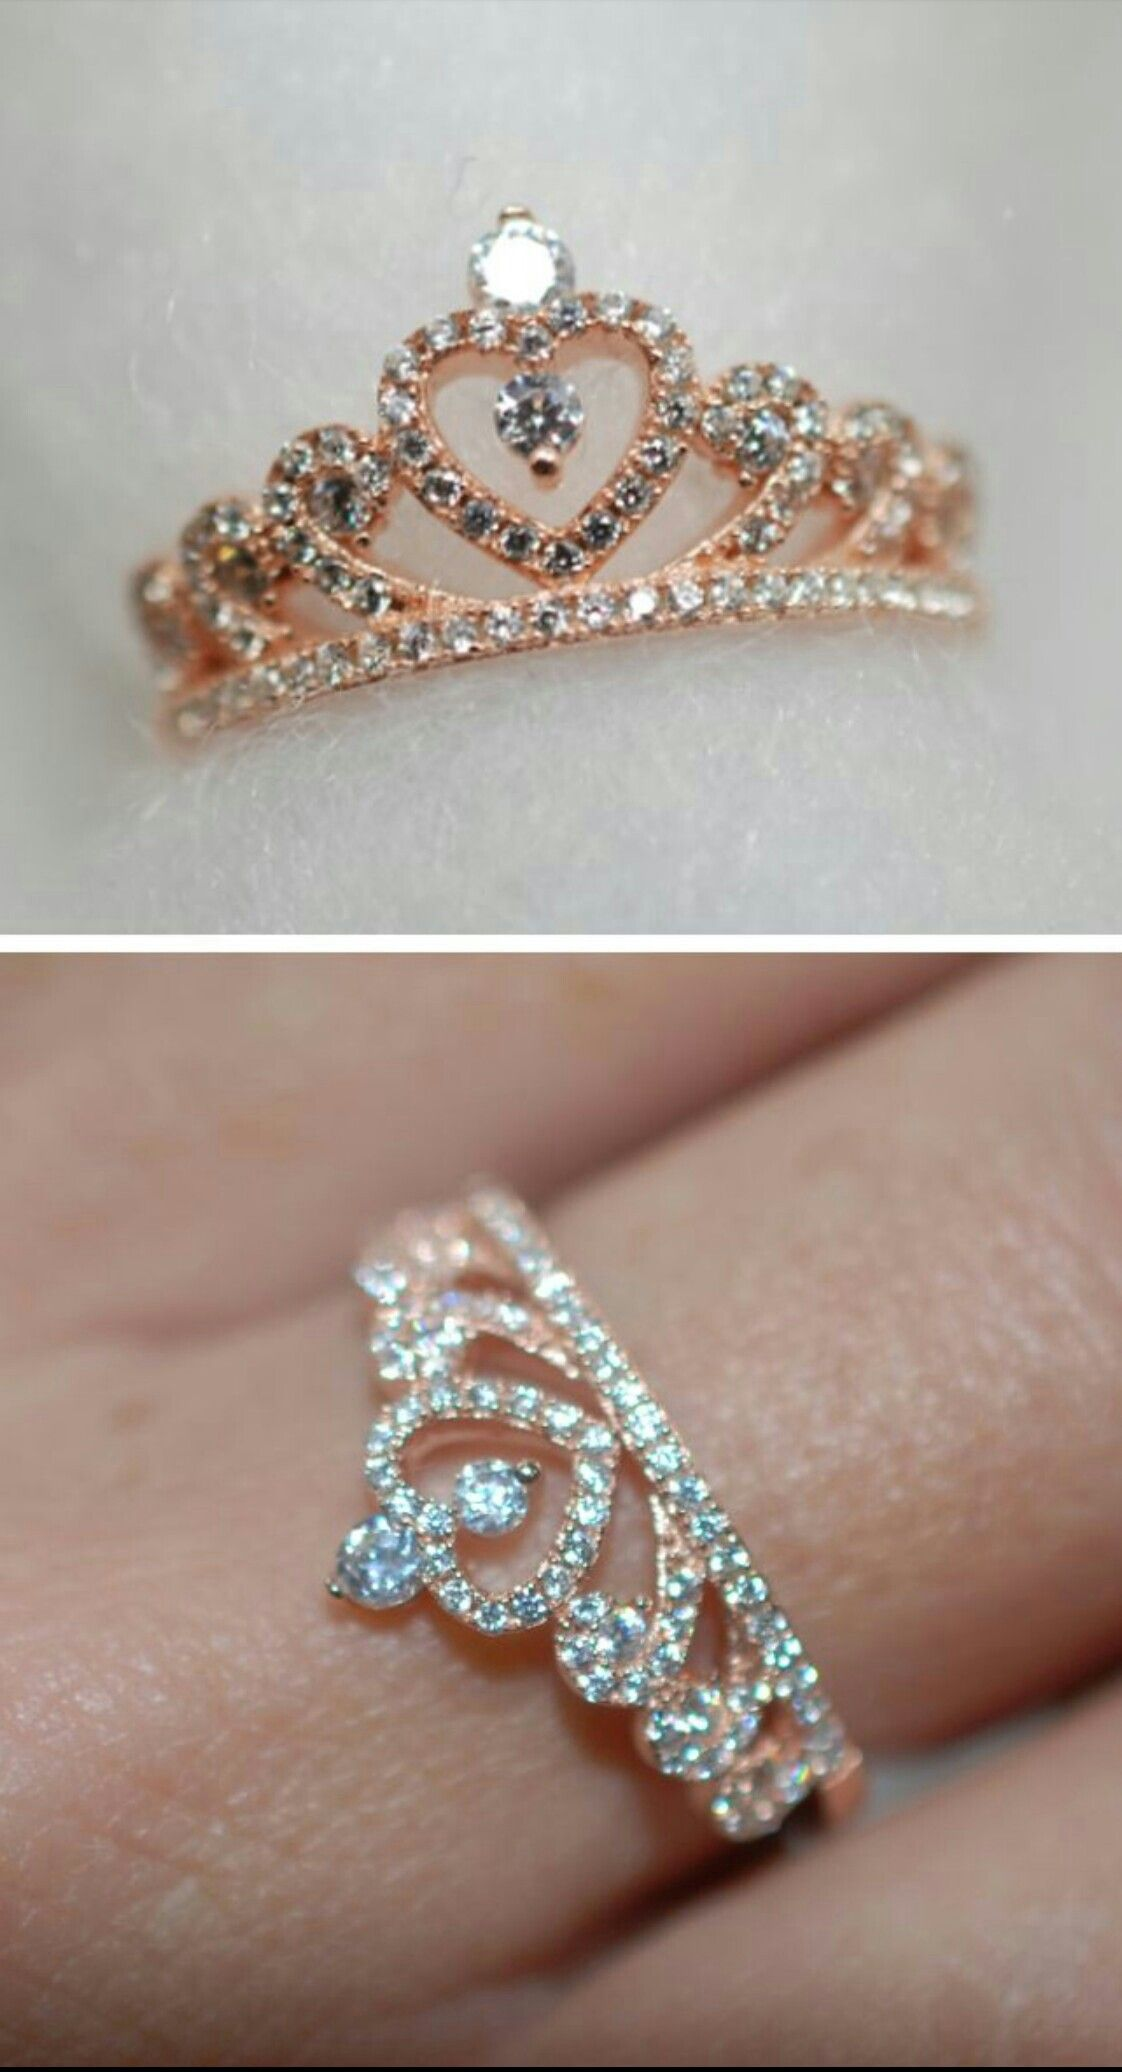 Oh my word that\'s so beautiful - Jeweled | Pinterest - Ringen ...